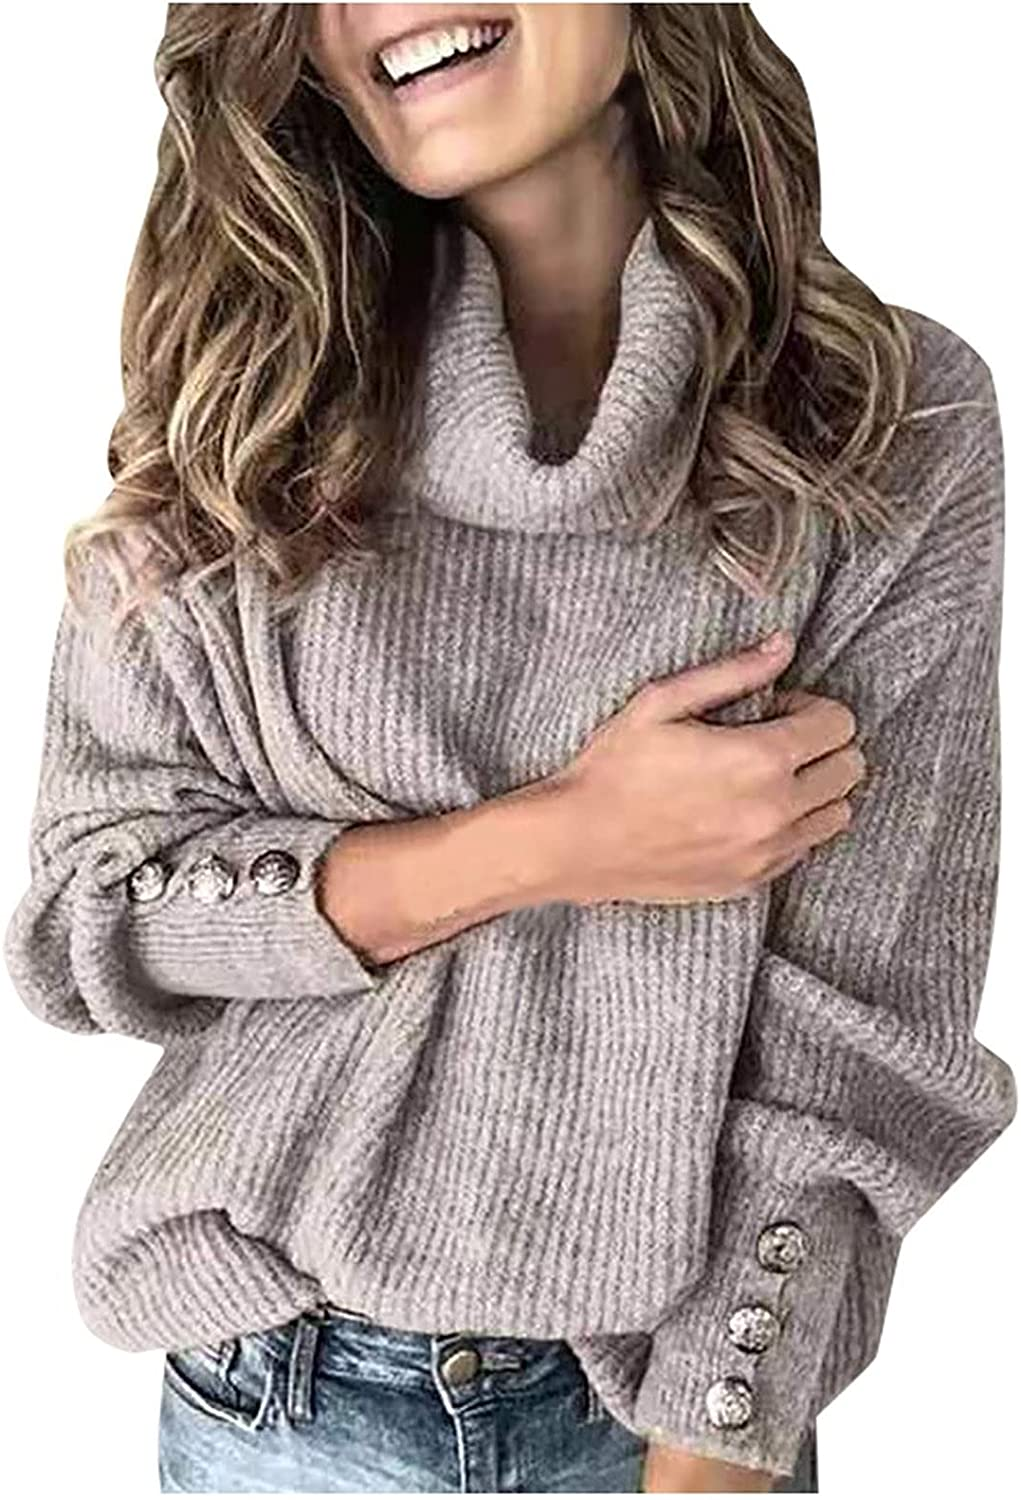 Women's Turtleneck Batwing Sleeve Sweater Loose Oversized Chunky Knitted Pullover Lightweight Soft Jumper Tops